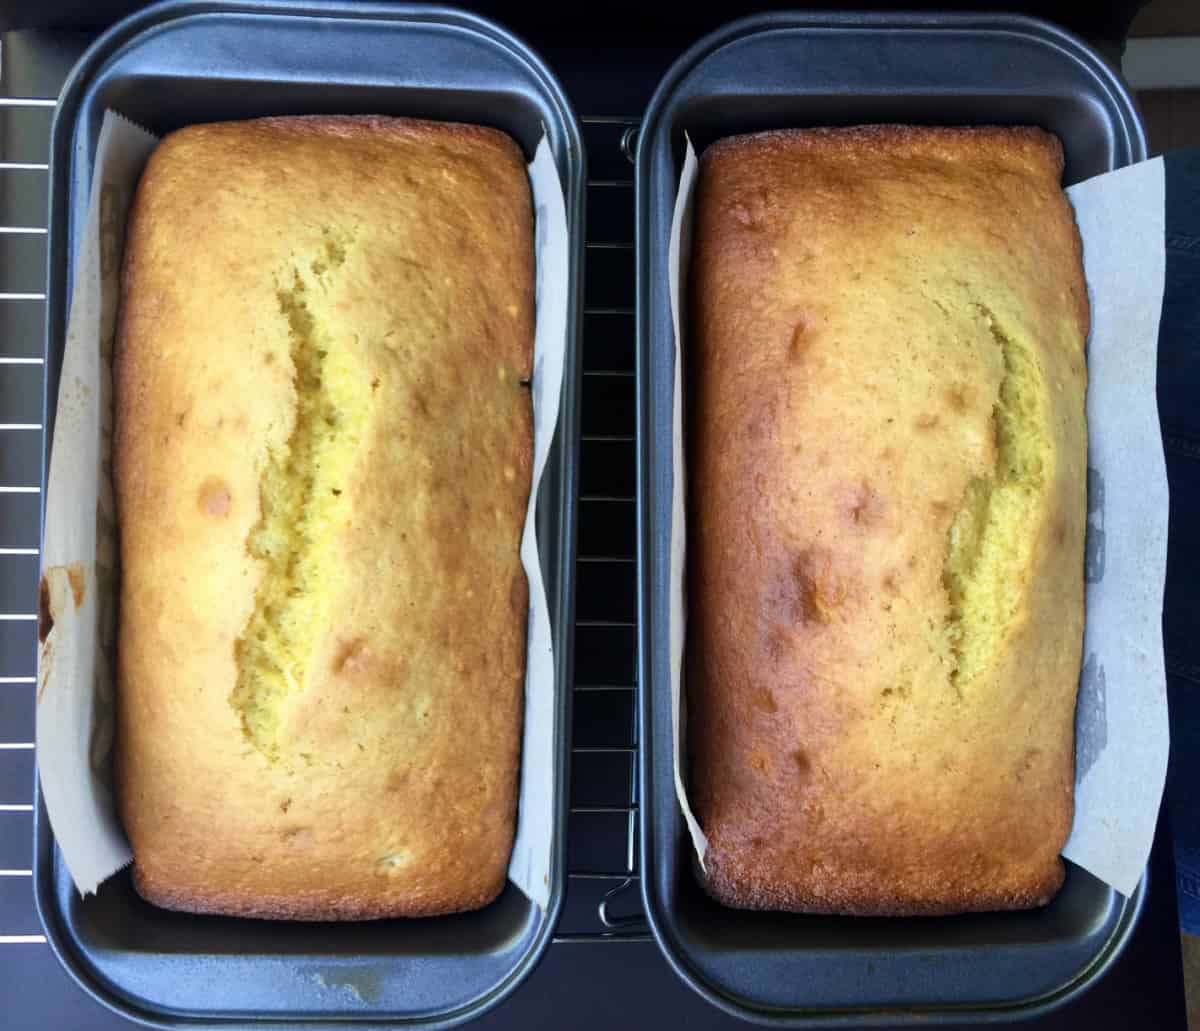 Two loaves of fresh baked banana bread.